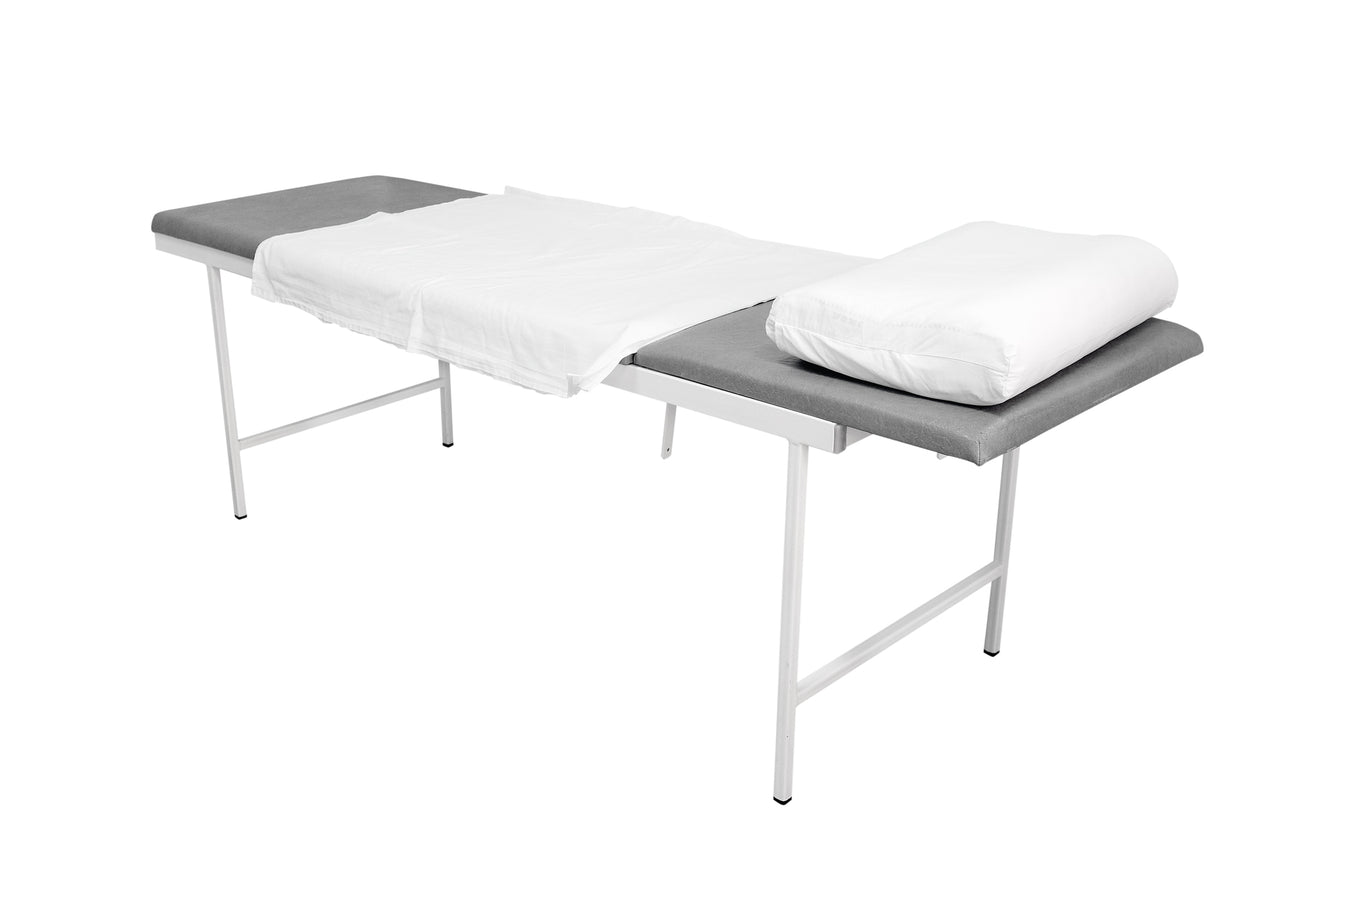 Medical examination couch with white sheet and pillow